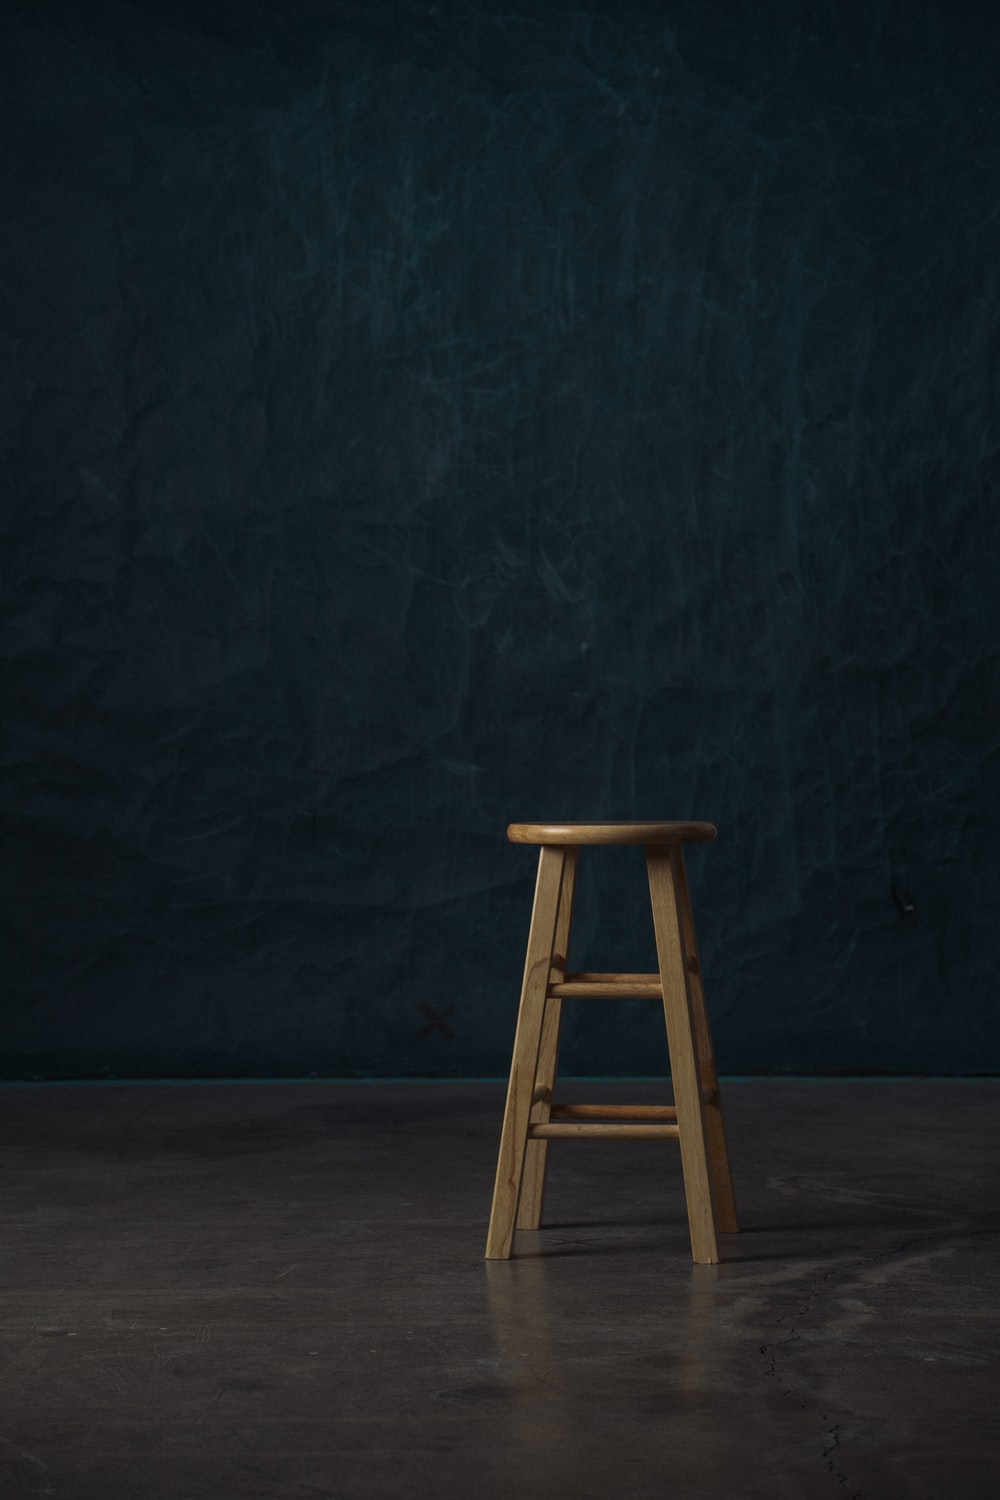 750 Backdrop Pictures Hd Download Free Images On Unsplash